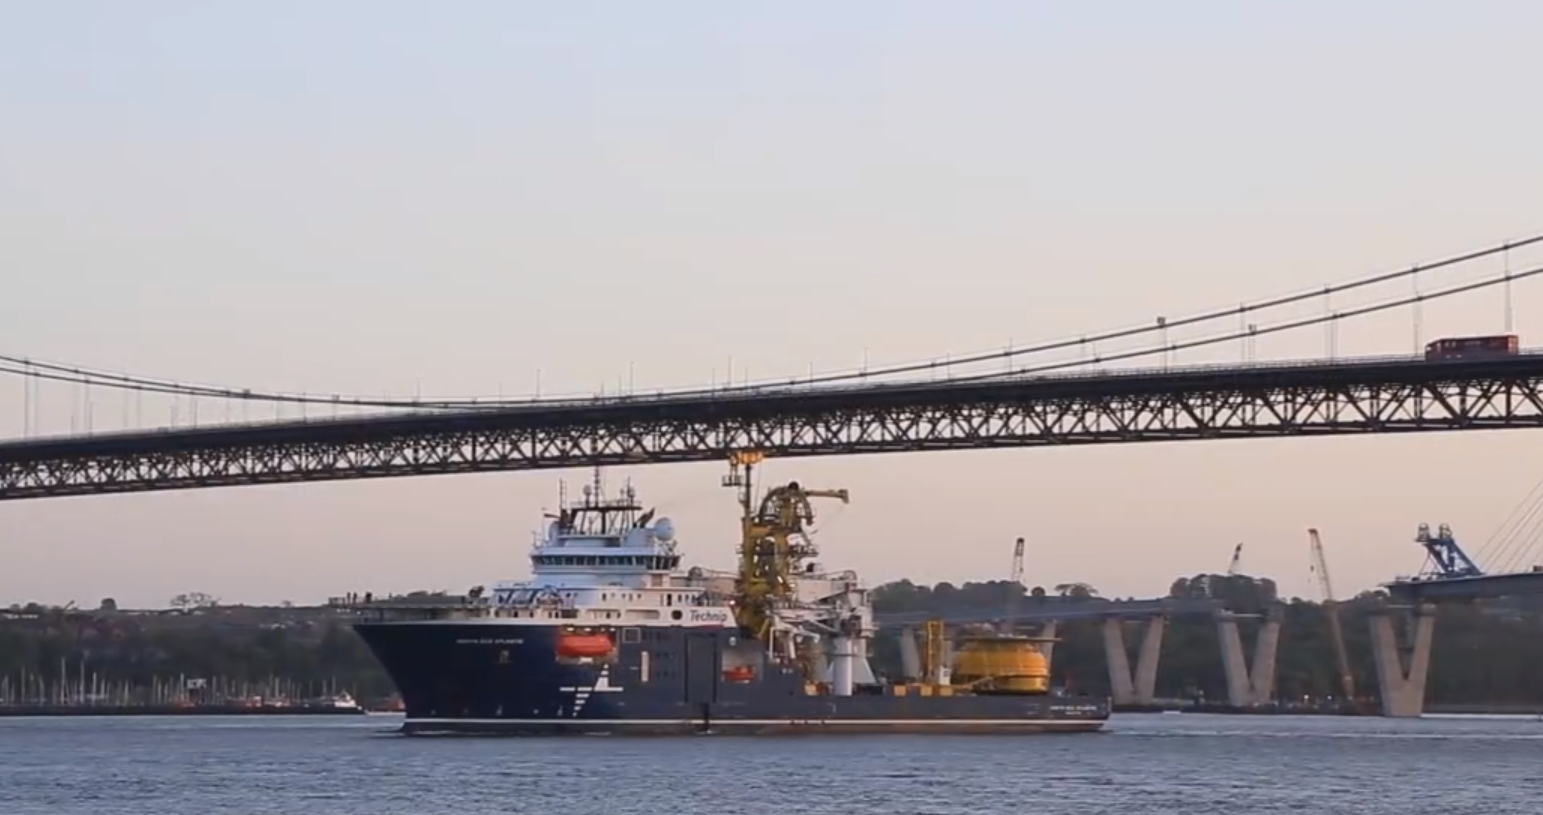 The North Sea Atlantic vessel passing below the Forth Road Bridge